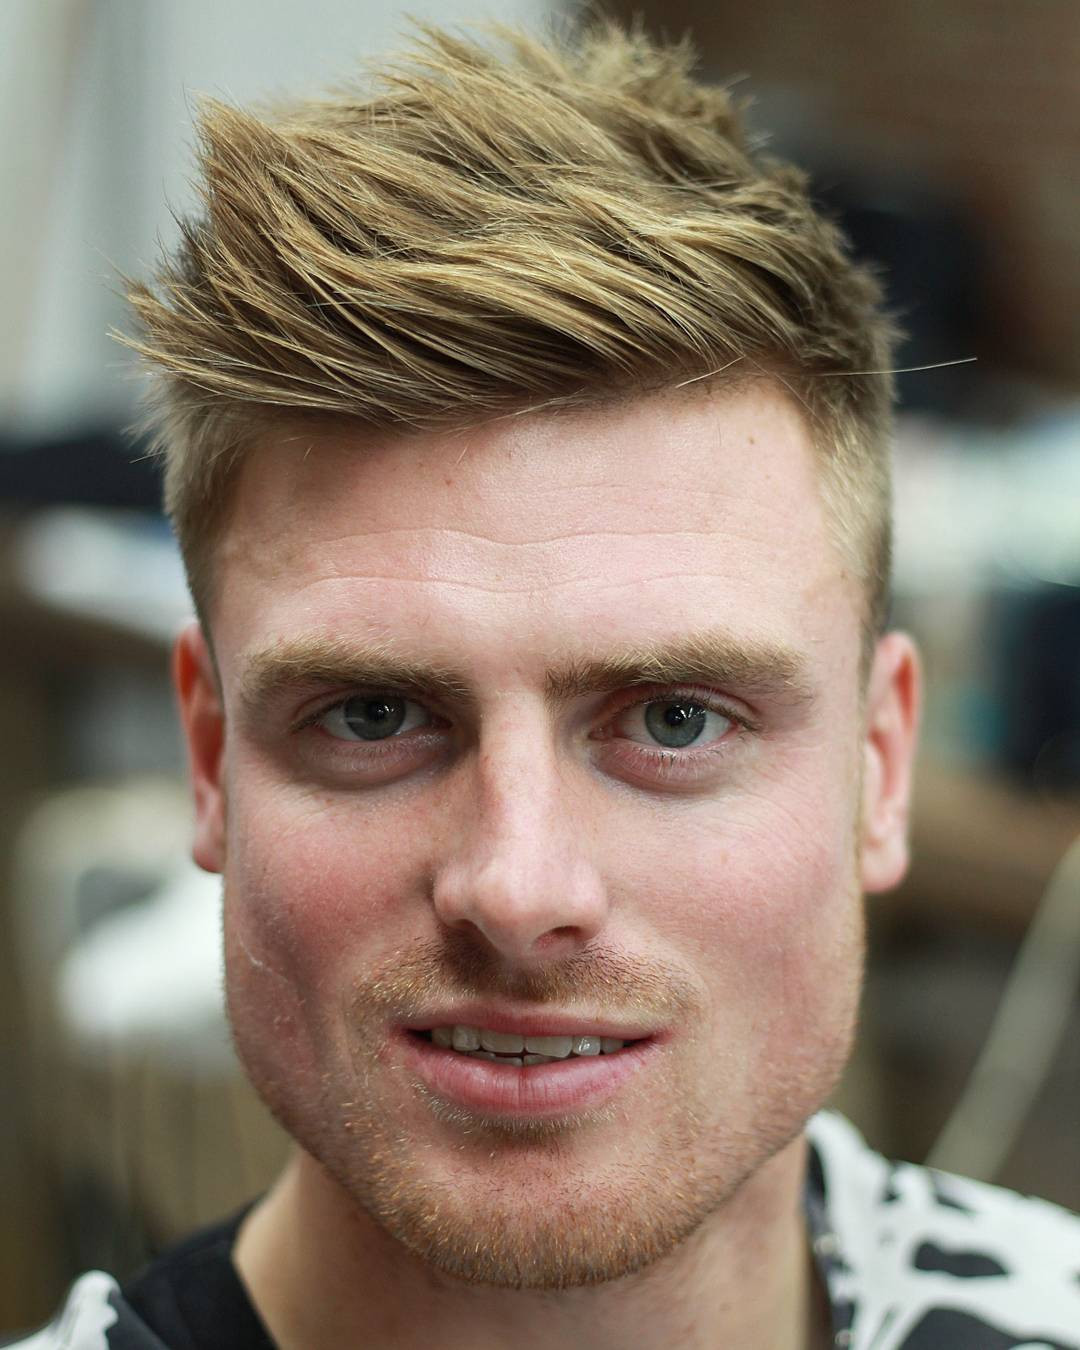 Best ideas about Mens Hairstyles Thick Hair . Save or Pin 15 New Haircuts Hairstyles For Men With Thick Hair Now.